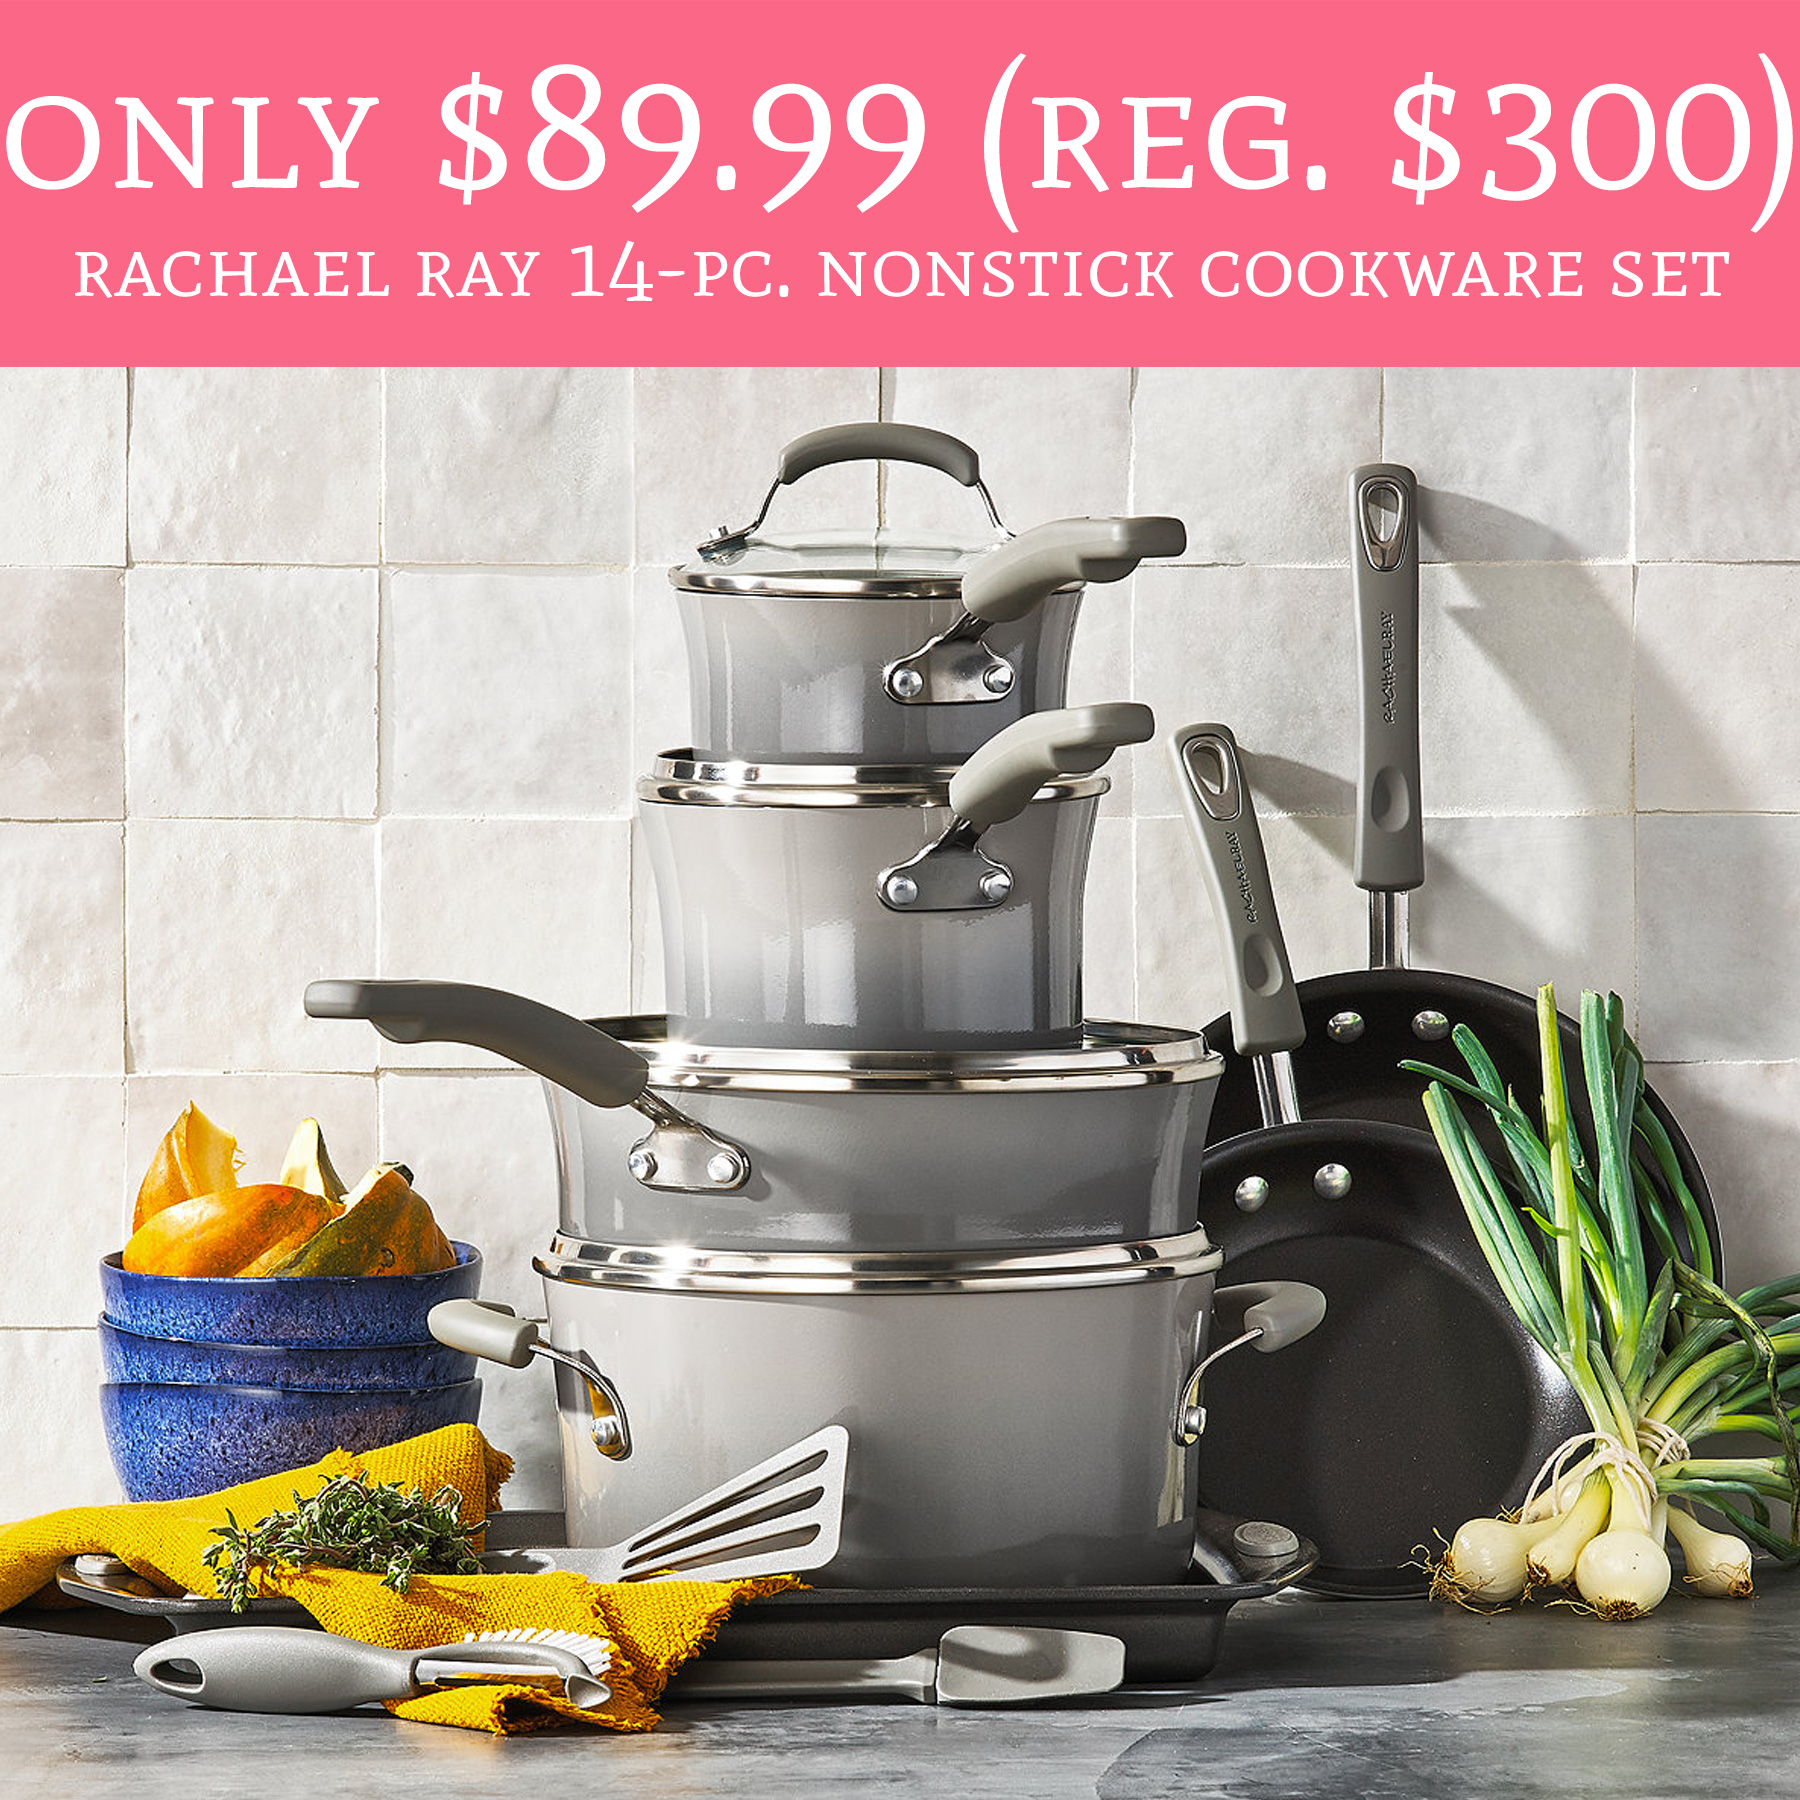 Fullsize Of Rachel Ray Cookware